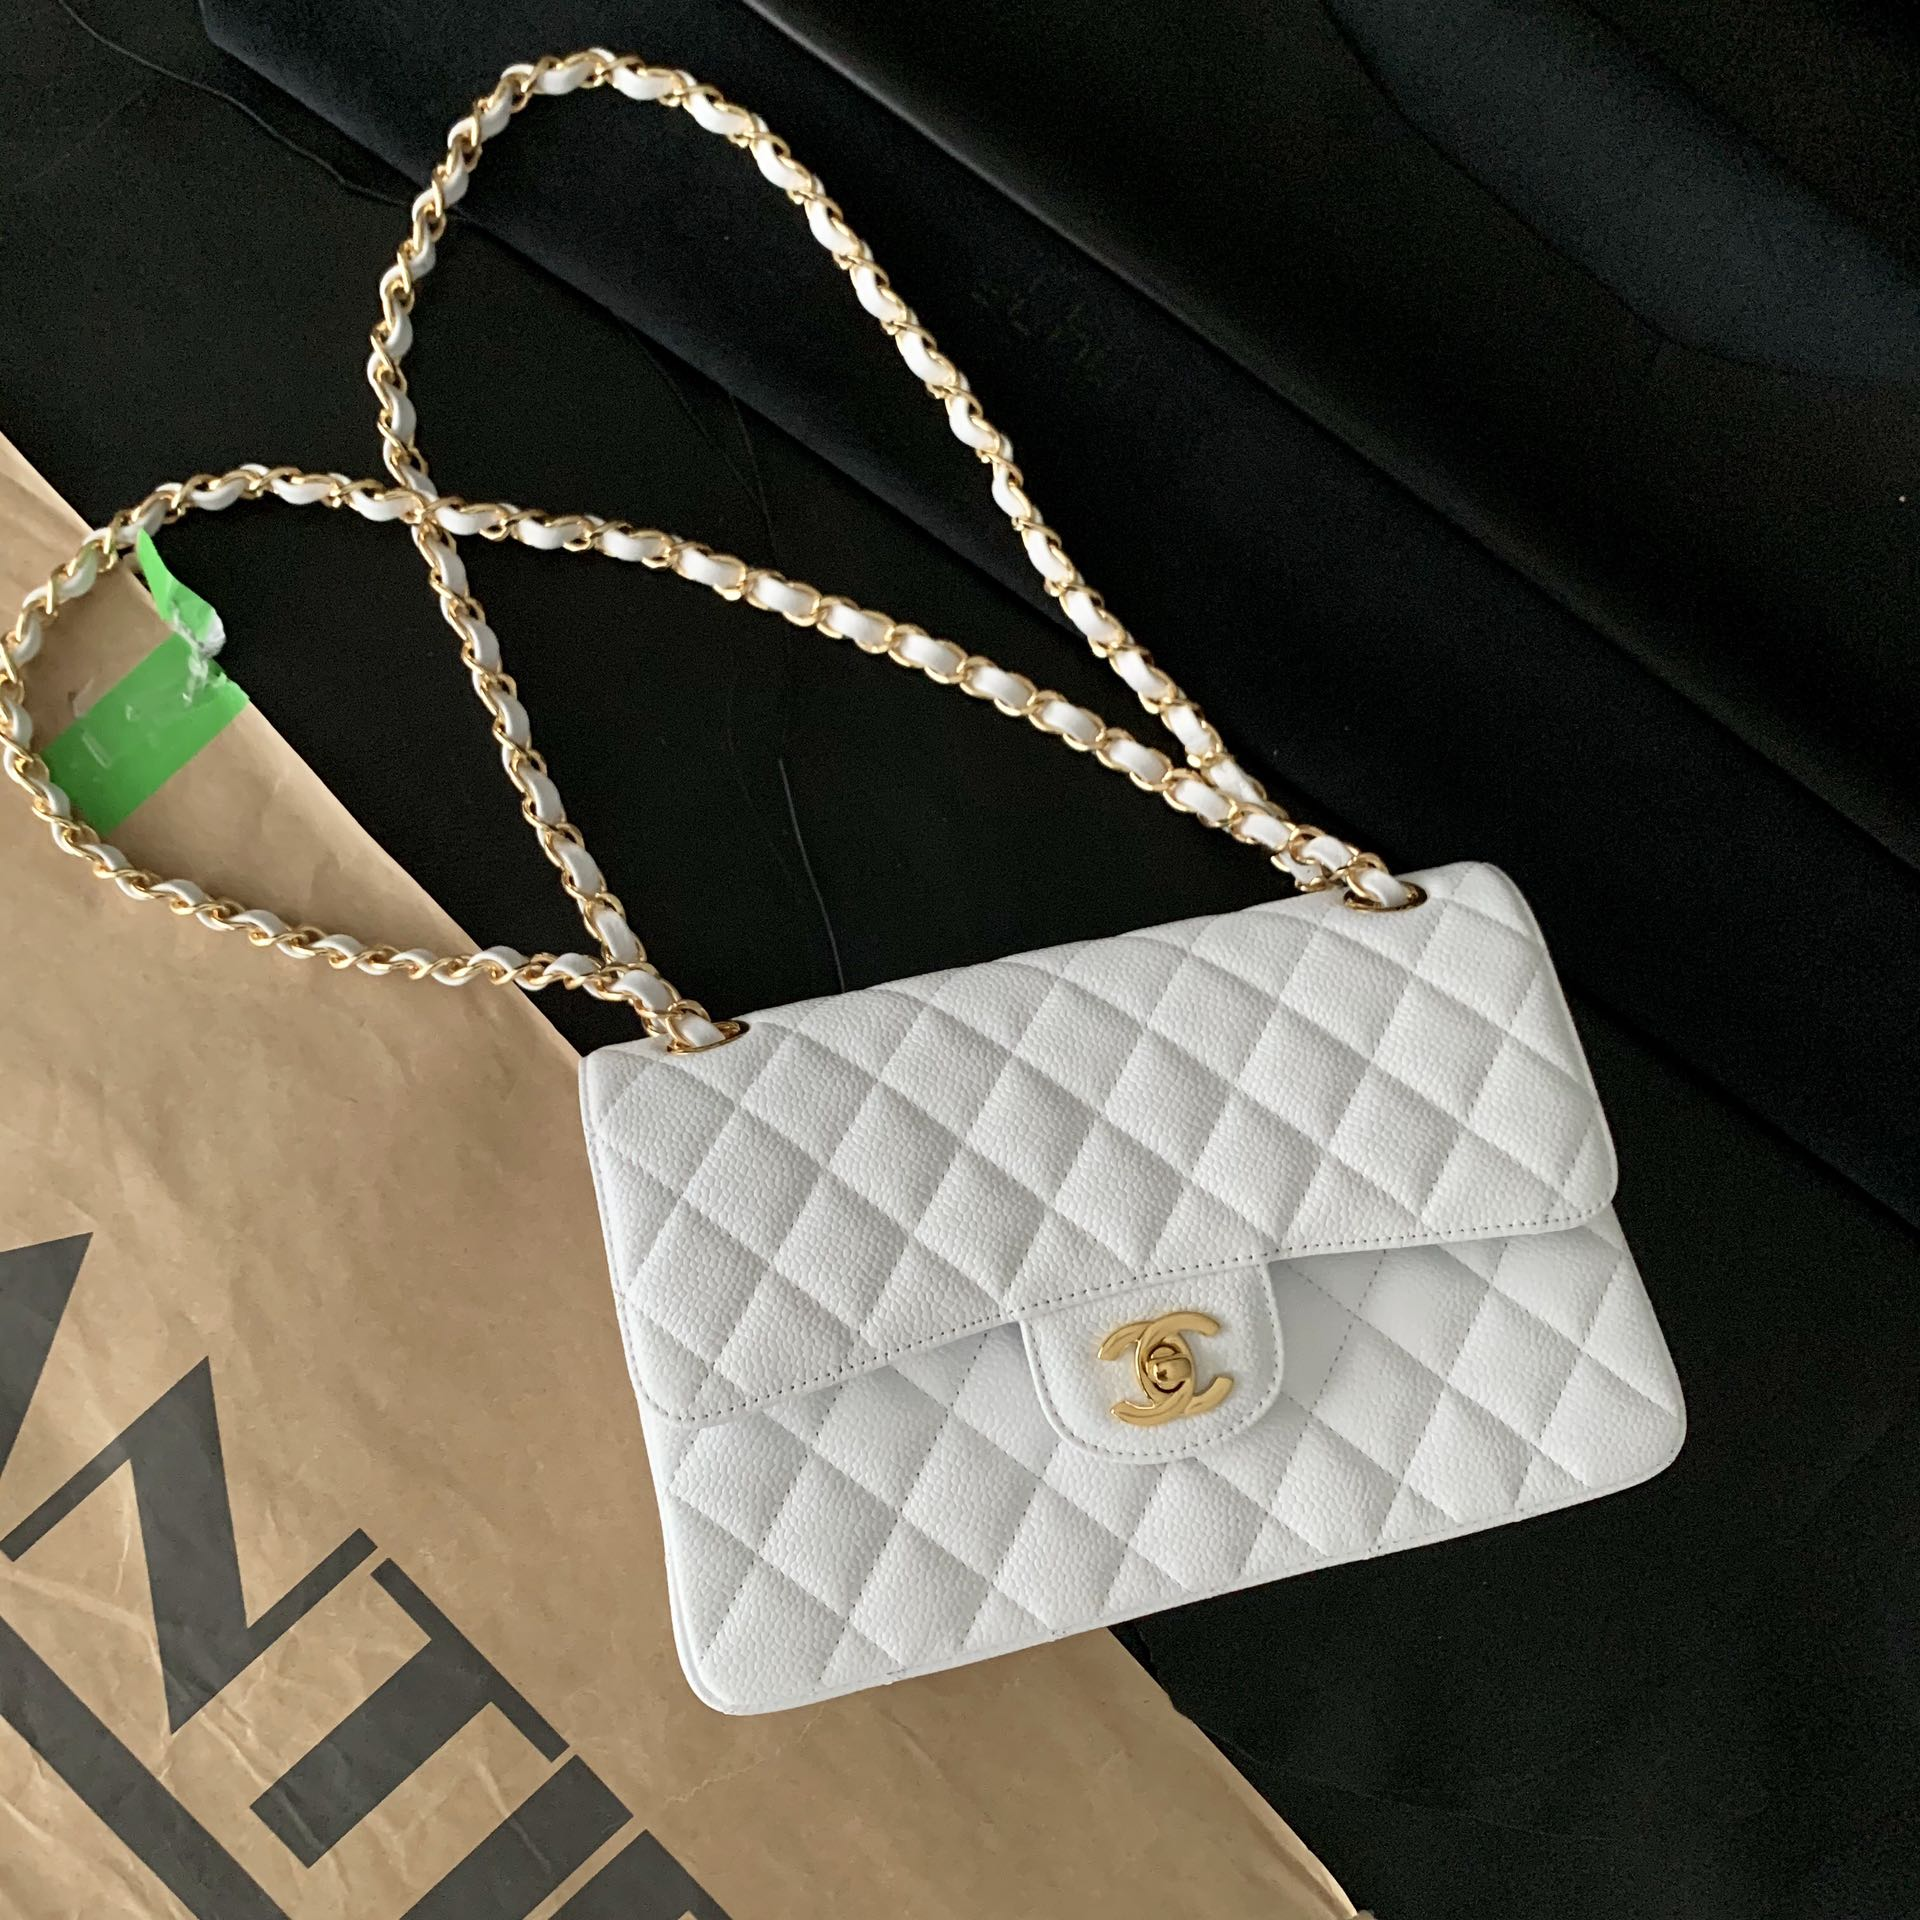 Original Copy Chanel Classic Flap Bag Grained Calfskin Gold-Tone Metal White